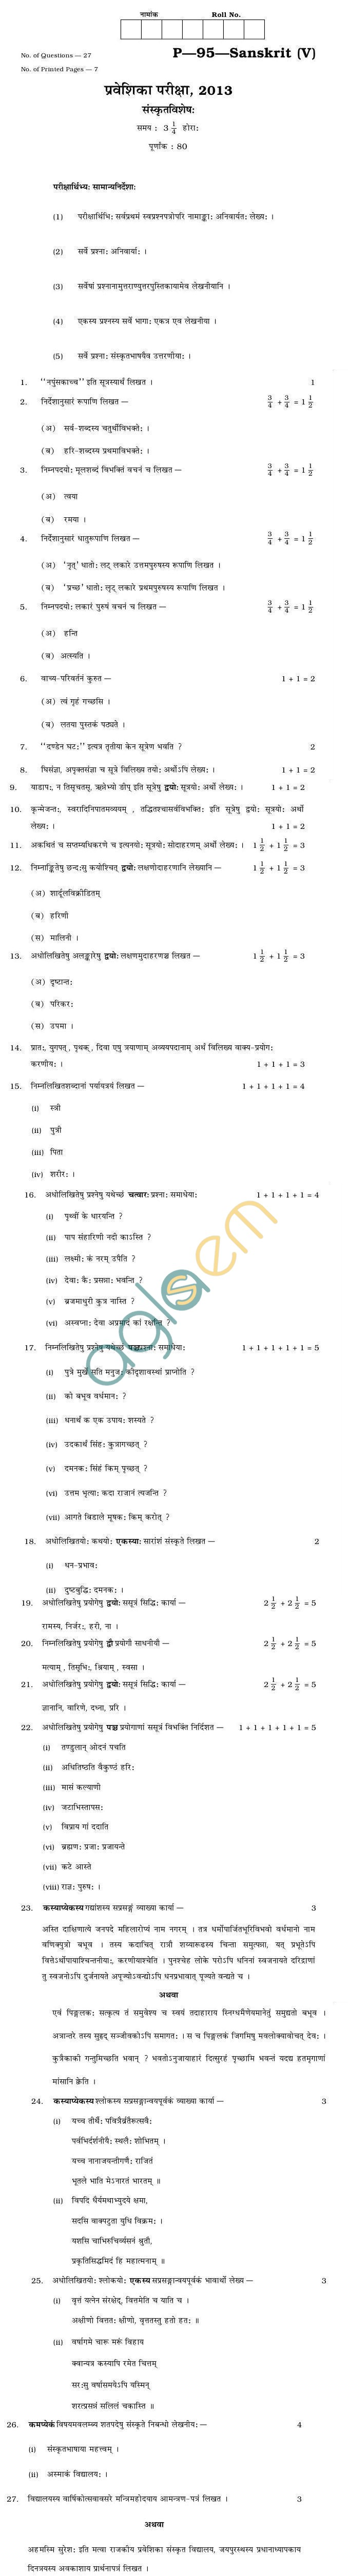 Rajasthan Board Praveshika Sanskrit (V) Question Paper 2013